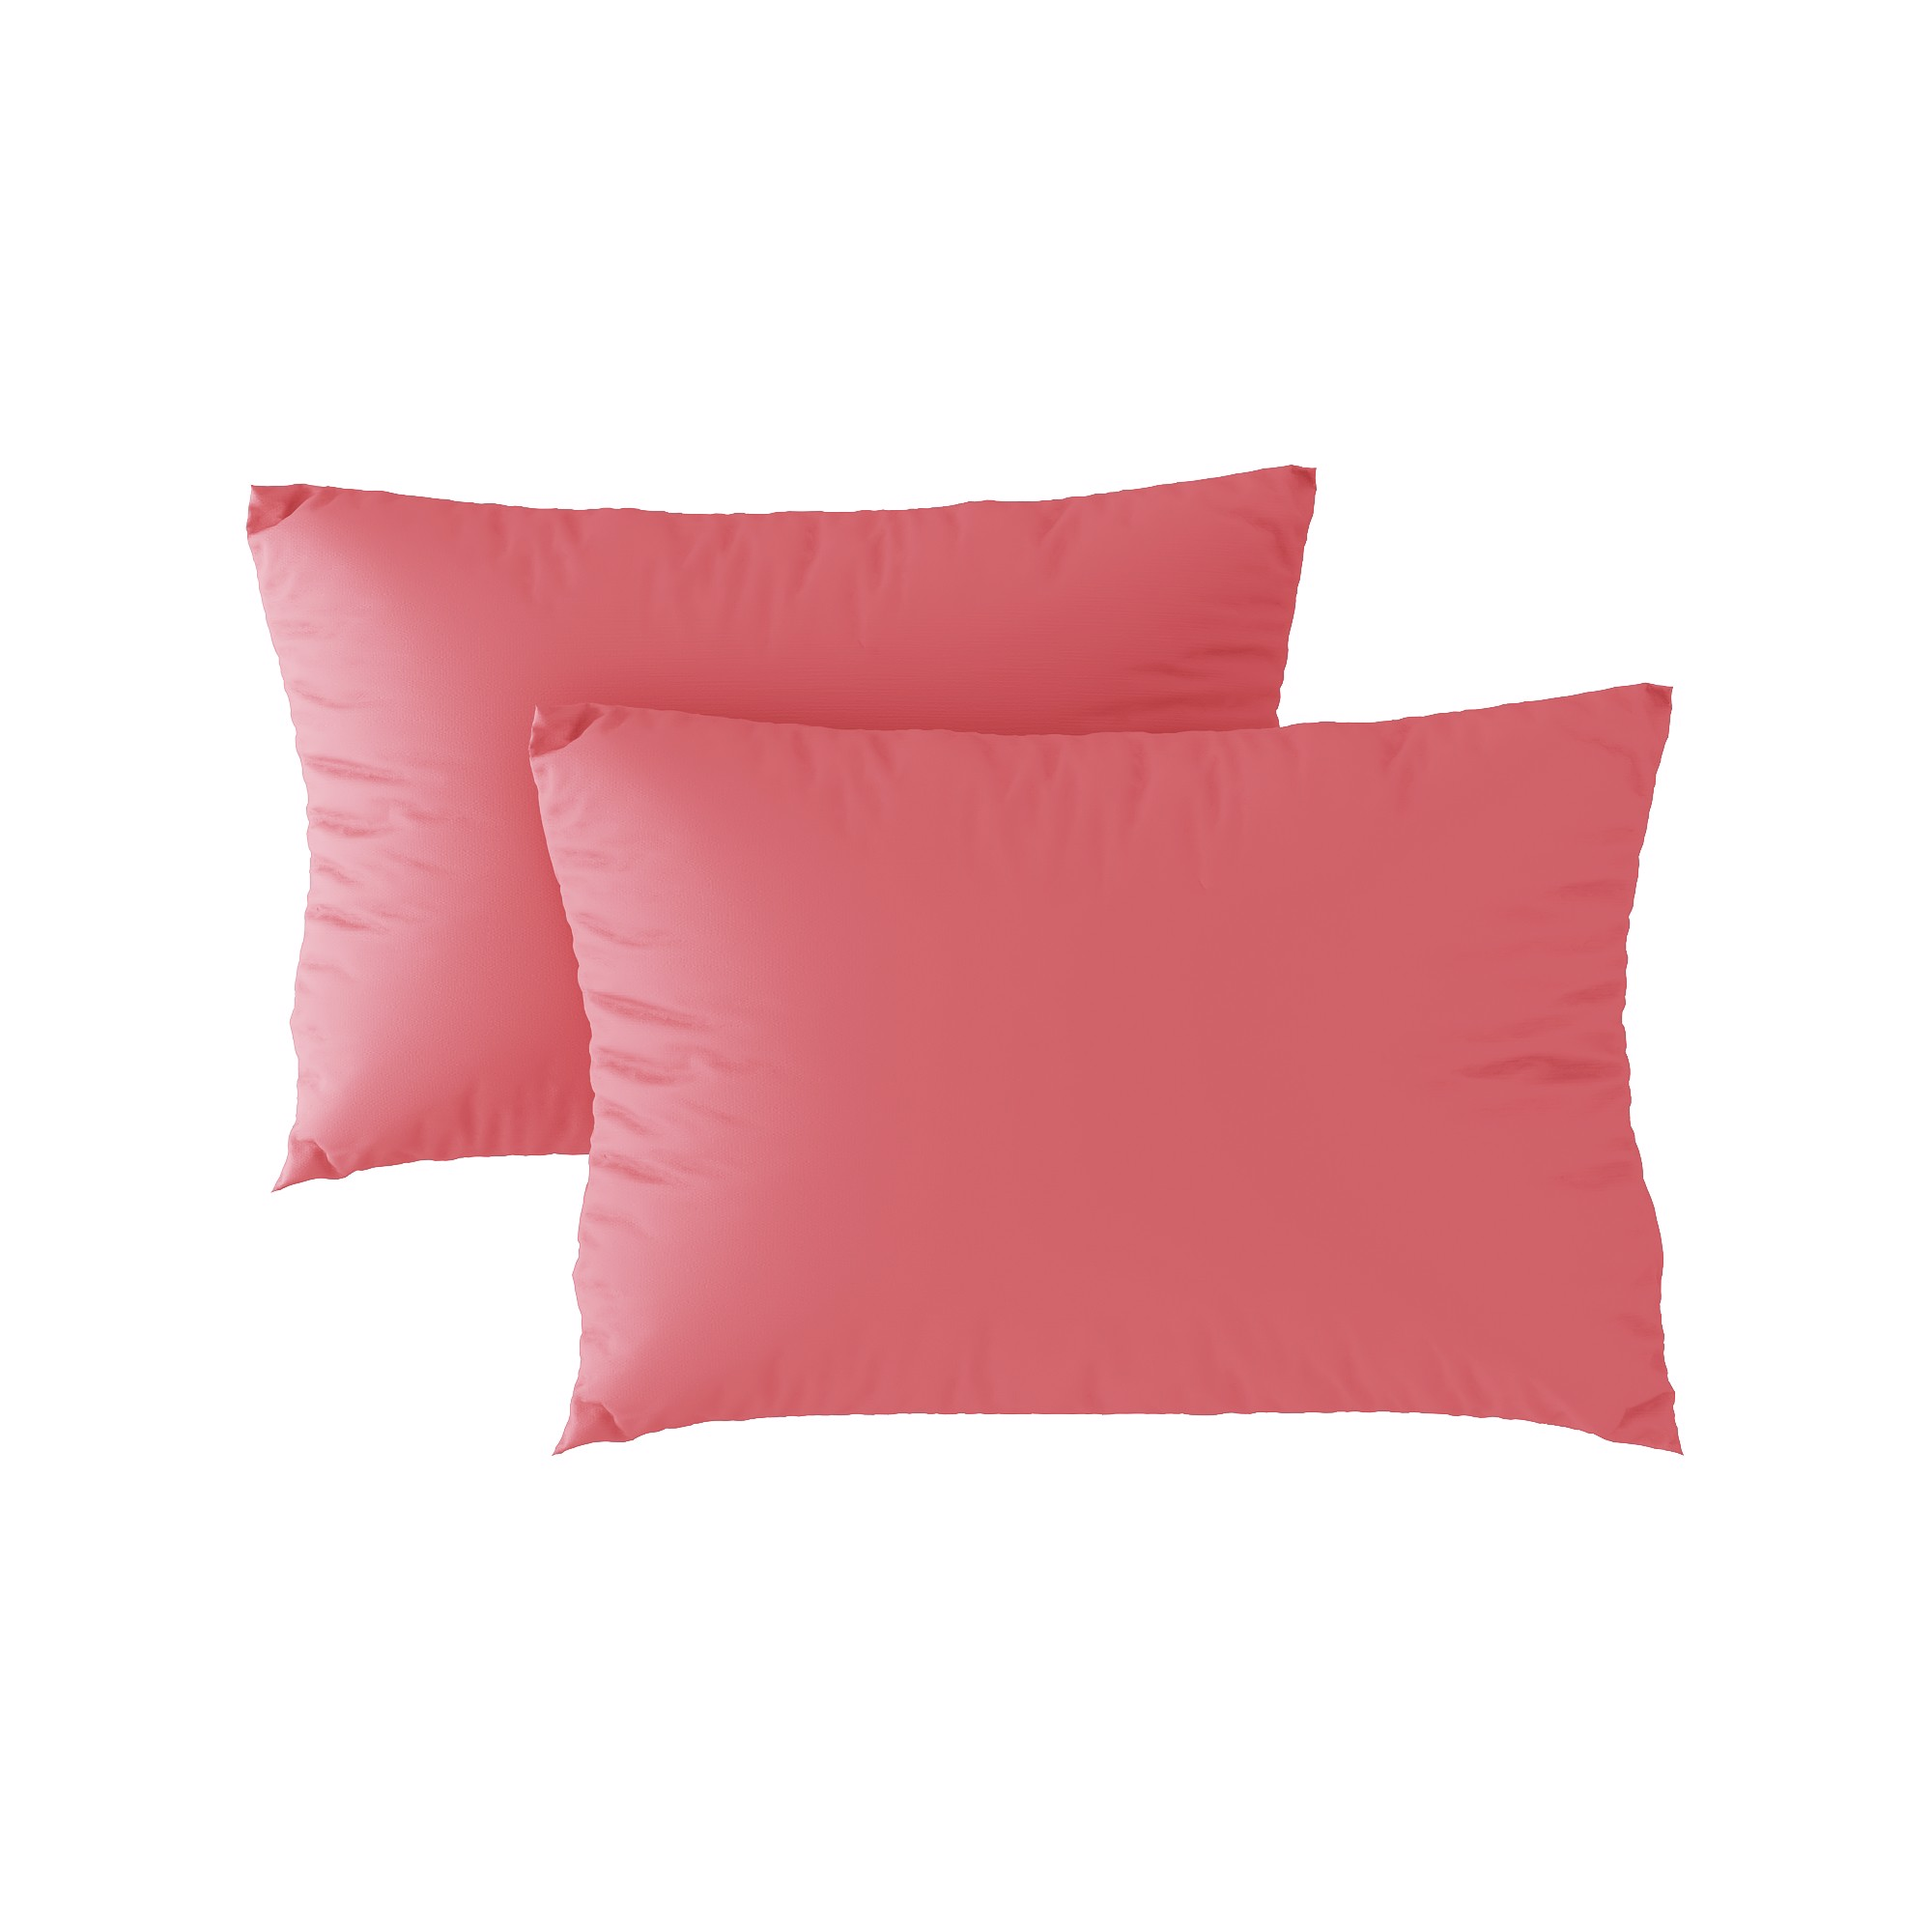 Standard pillow case 12 Punch pink (2pcs)